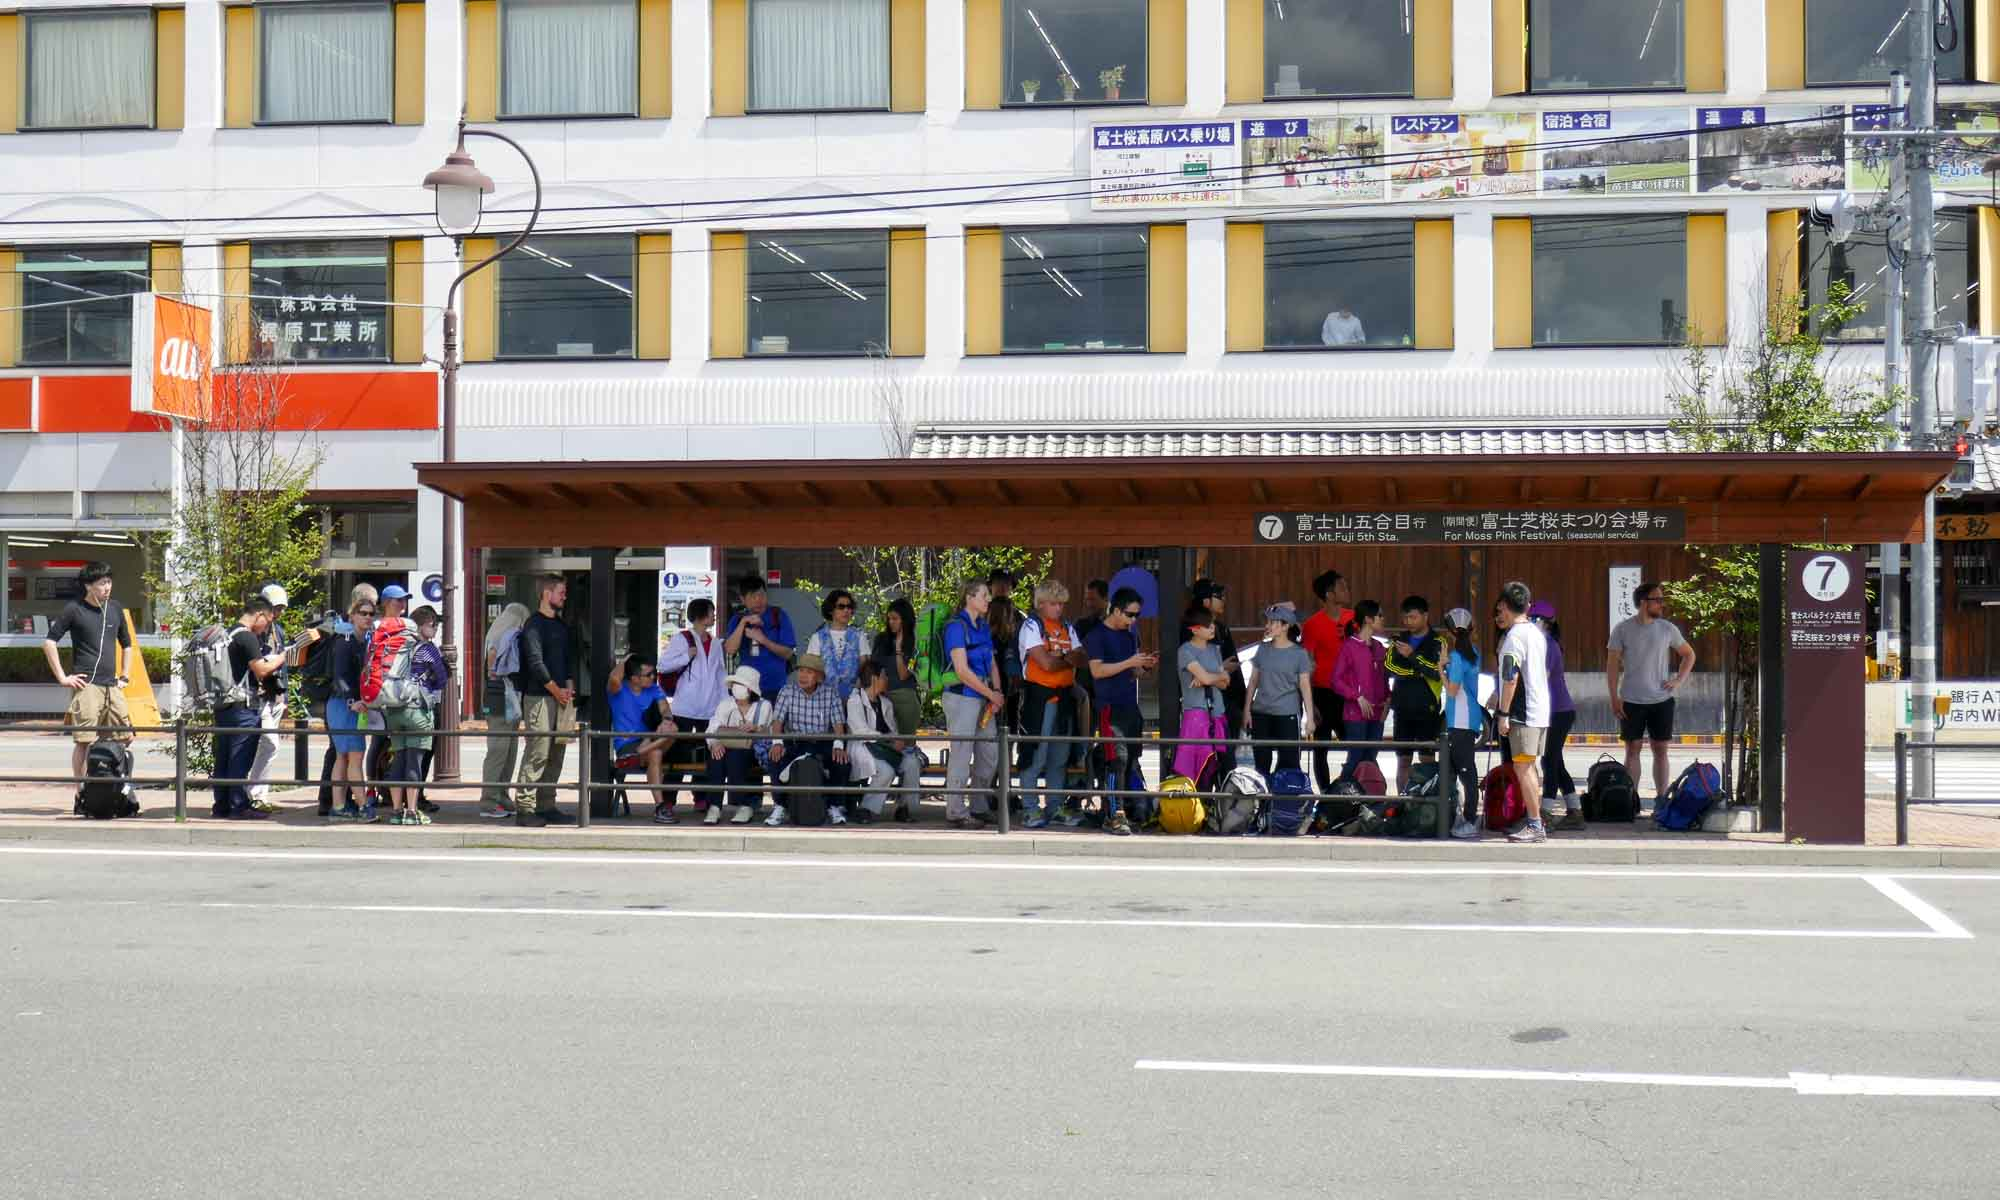 People waiting for the bus to Mount Fuji 5th station